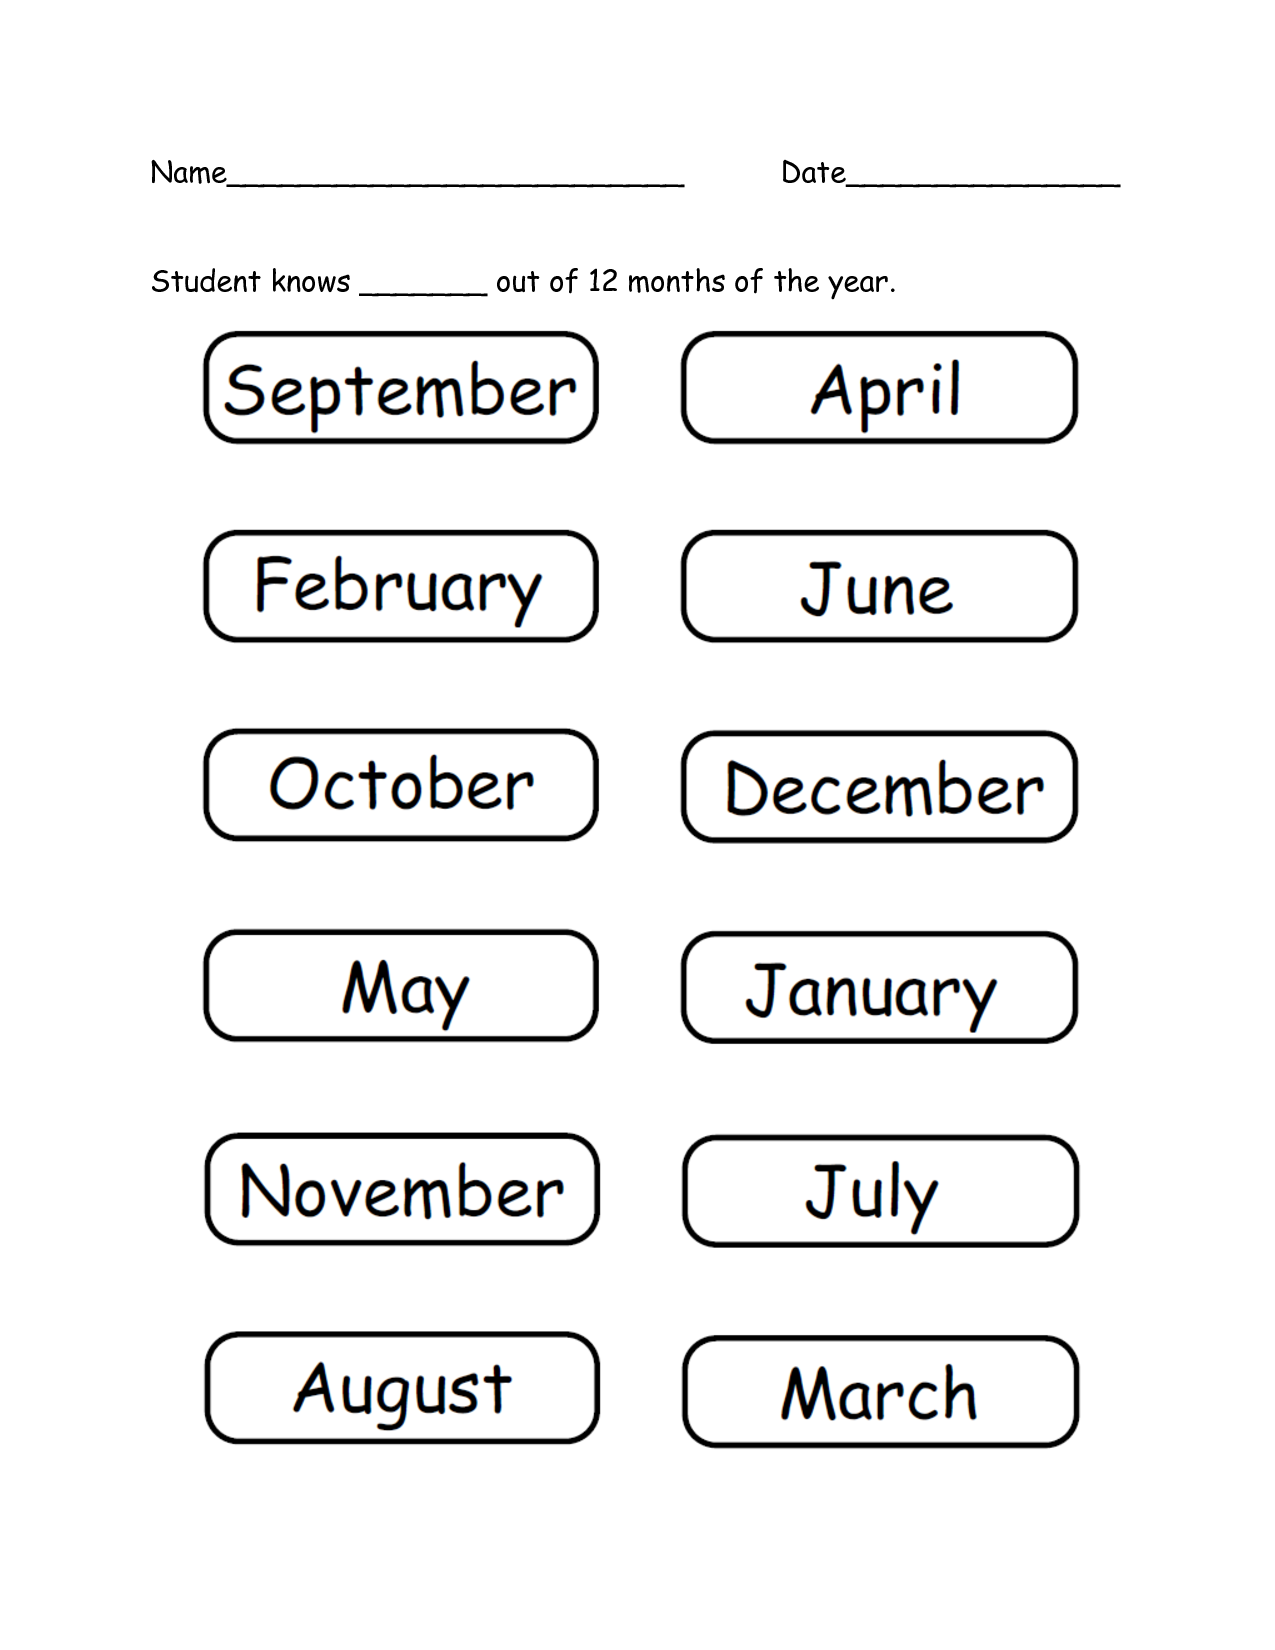 Months Of The Year Http Espemoreno Blogspot Com Es P Picasa Html Writing Groups 12 Months Months